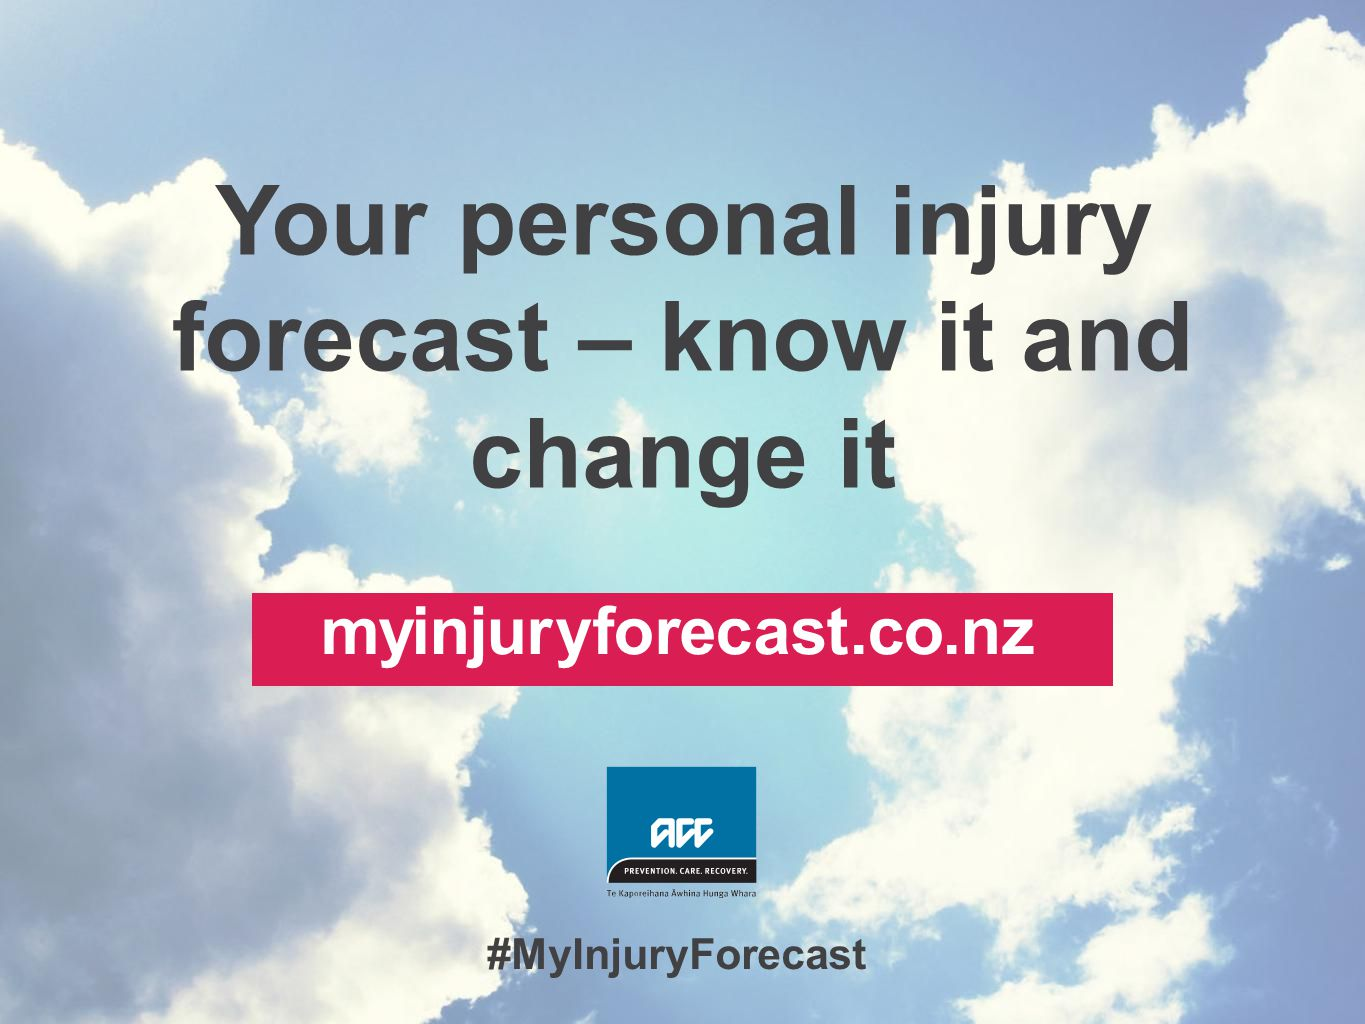 Your personal injury forecast – know it and change it myinjuryforecast.co.nz #MyInjuryForecast